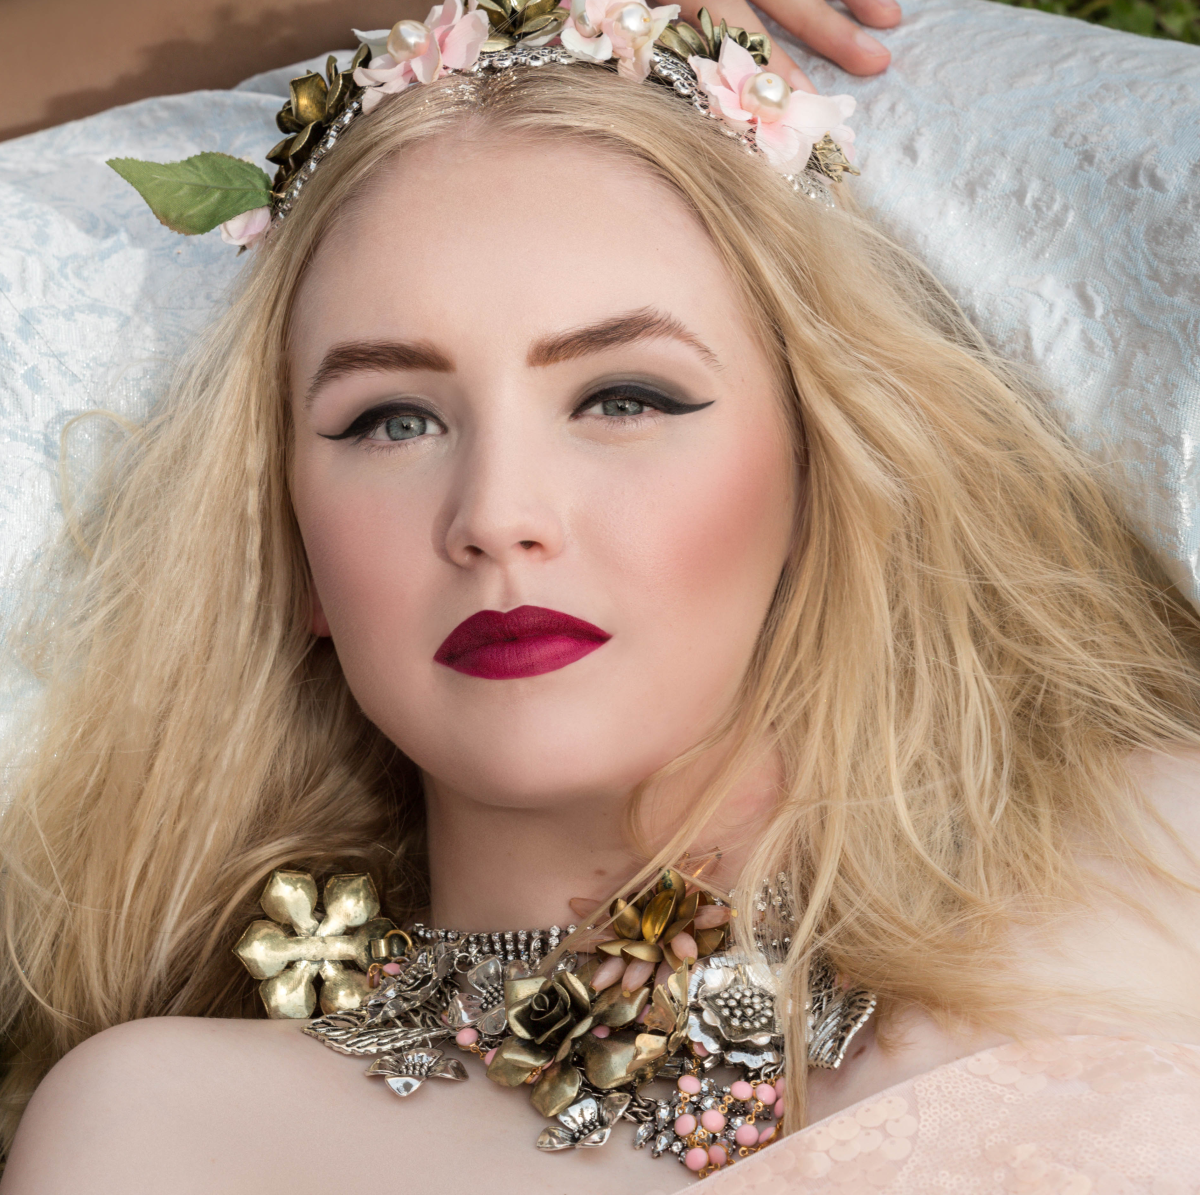 From Jessie Dugan's Spring Shoot. This was also part of a collaboration featuring other Houston fashion designers, including wardrobe by Miles David